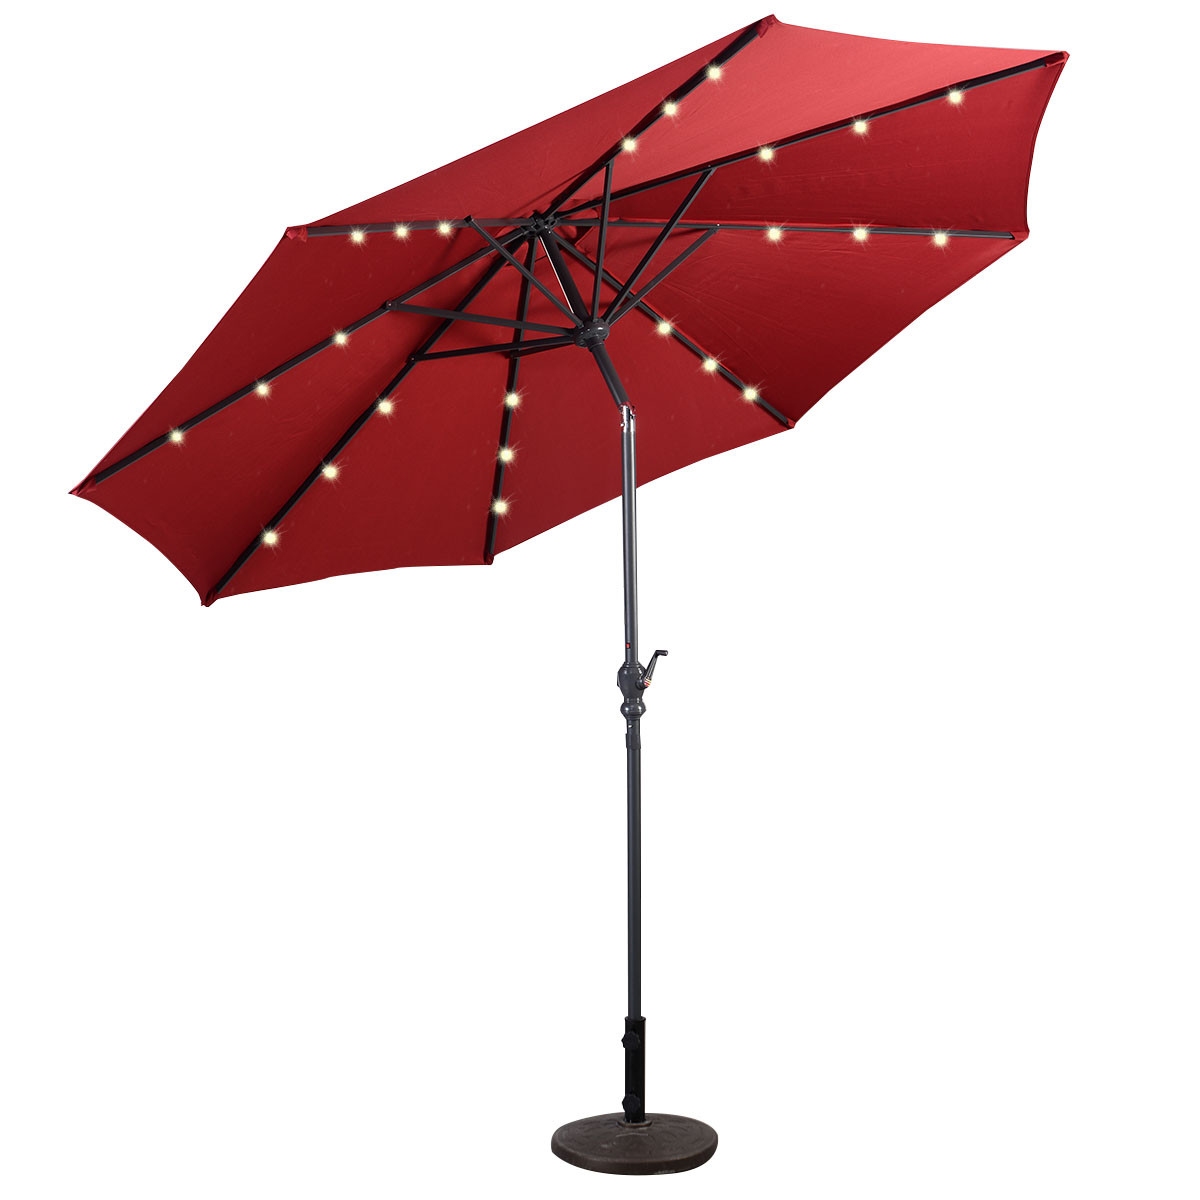 Best ideas about Patio Umbrella Walmart . Save or Pin 9 Deluxe Solar Powered LED Lighted Patio Umbrella Tan Now.